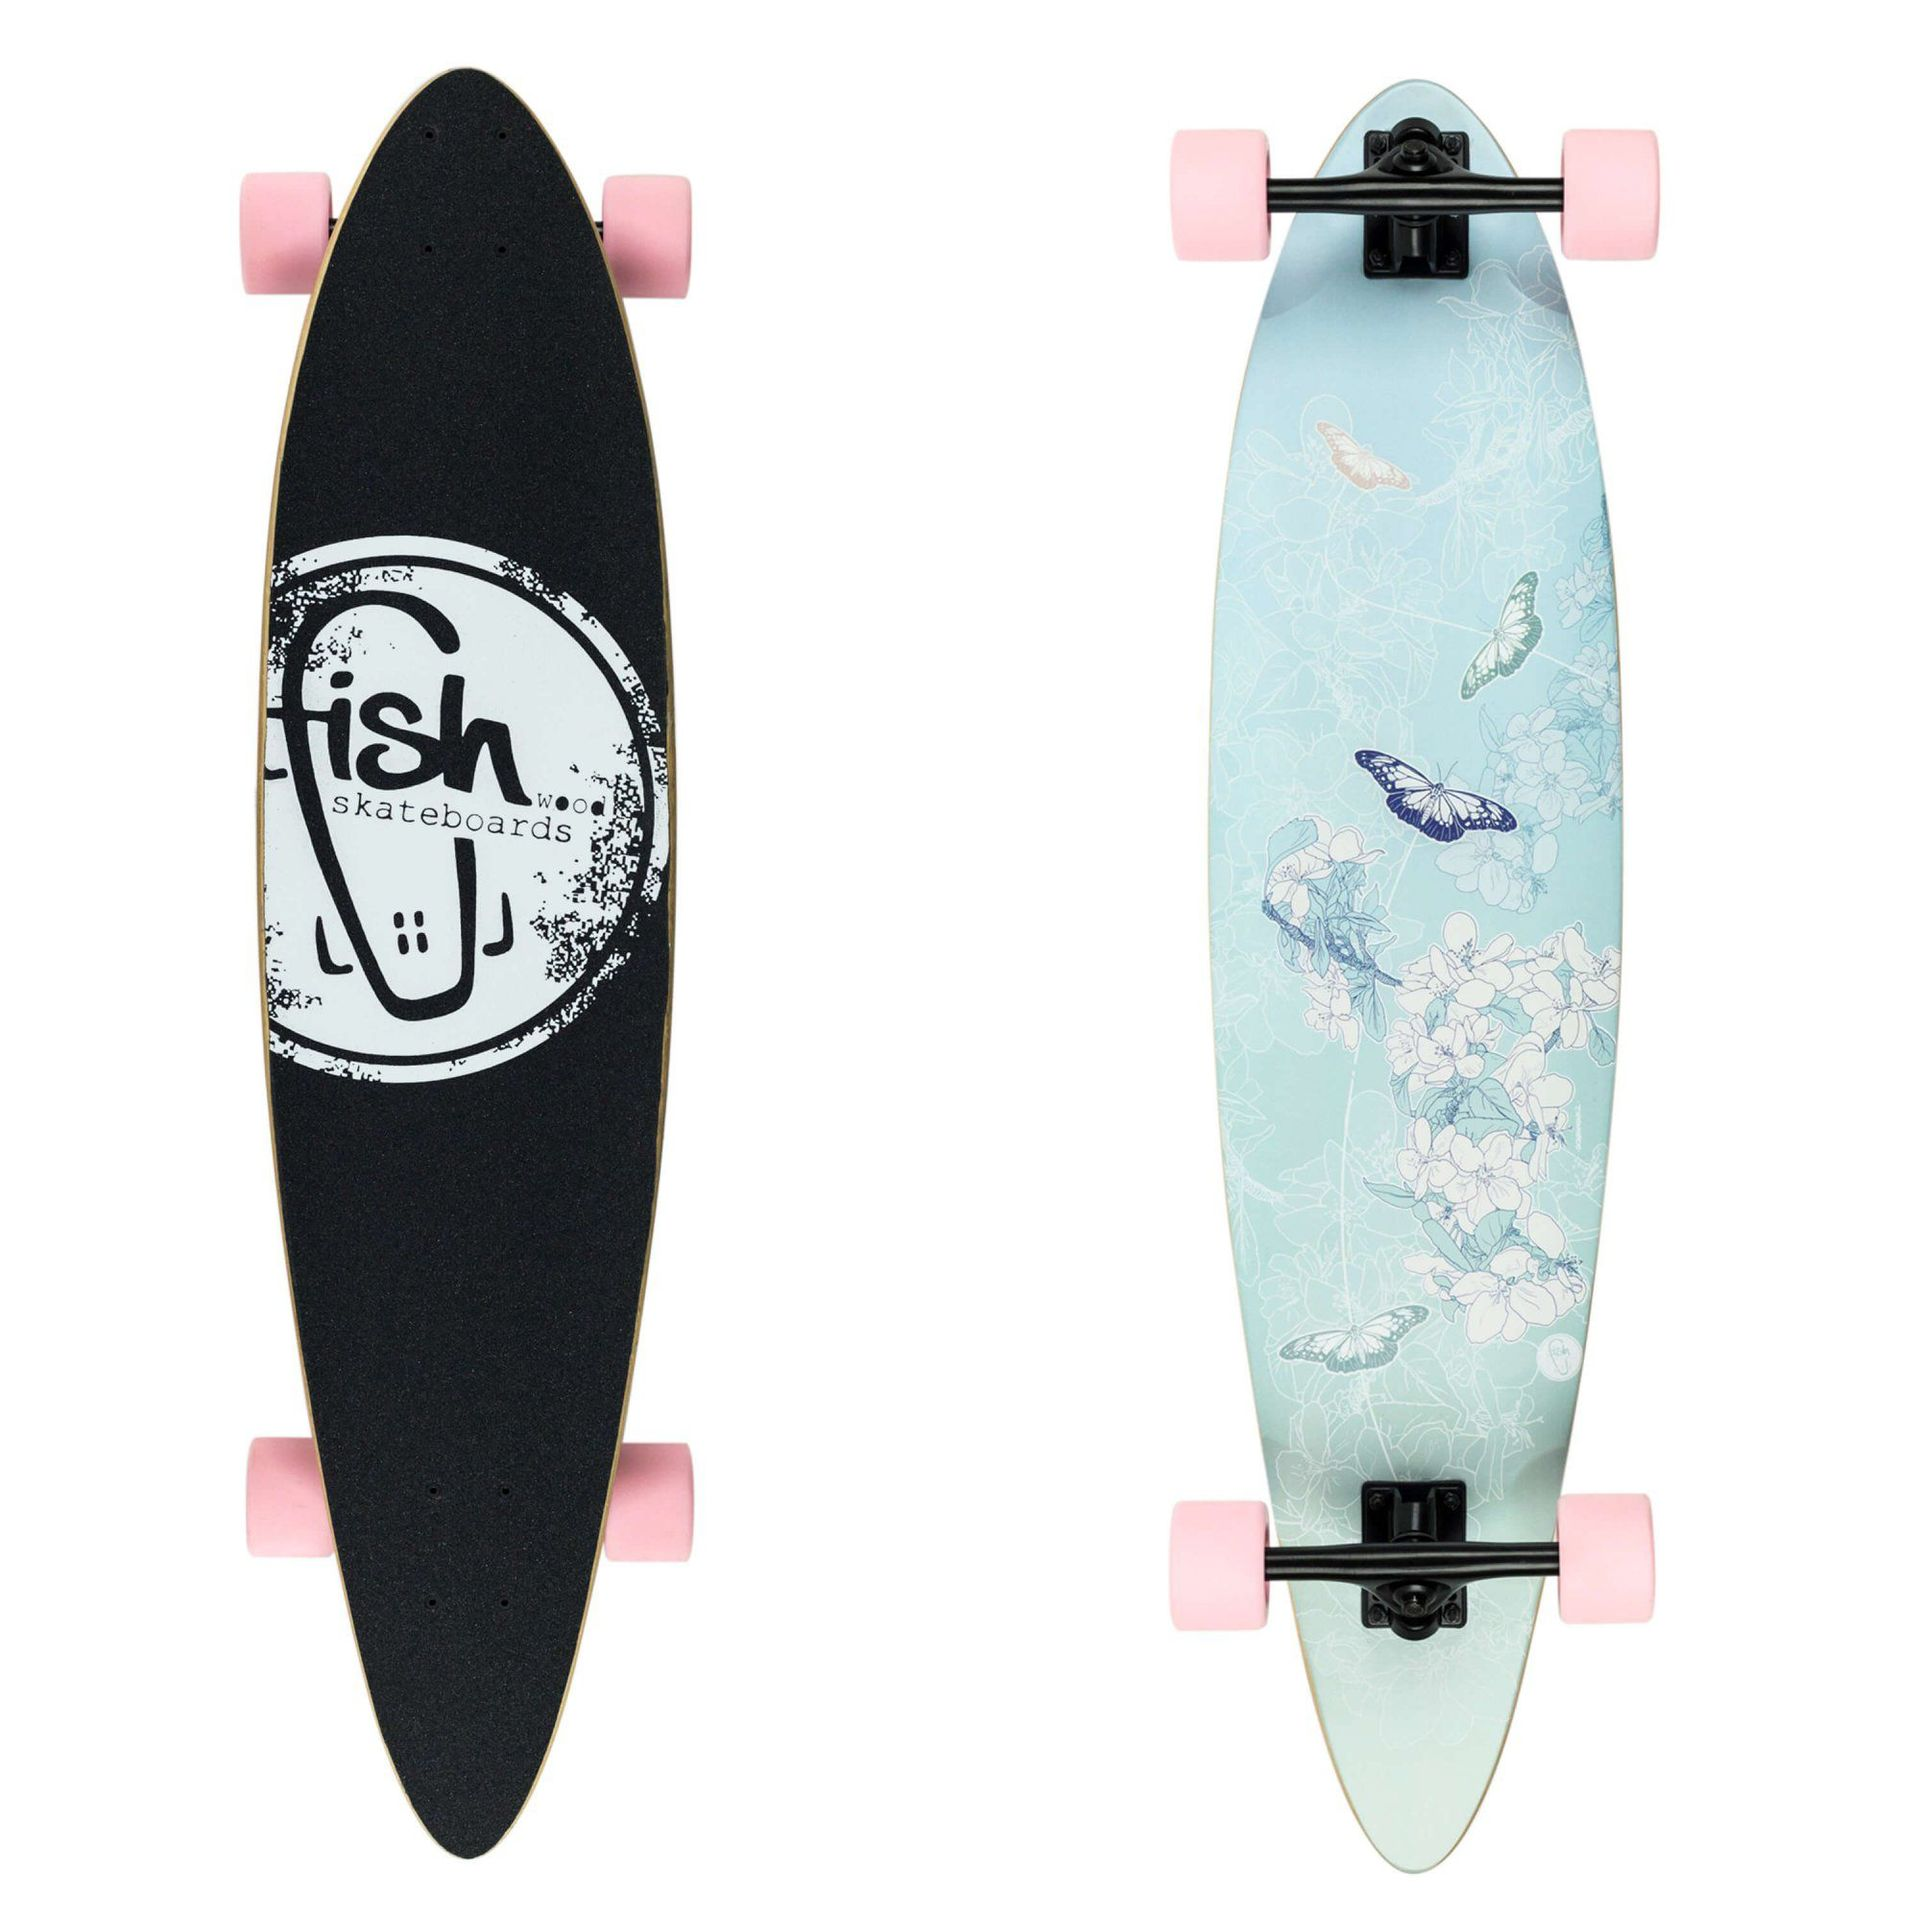 LONGBOARD FISH SKATEBOARDS LONGBOARD 40 BUTTERFLY|BLACK|SUMMER PINK 1